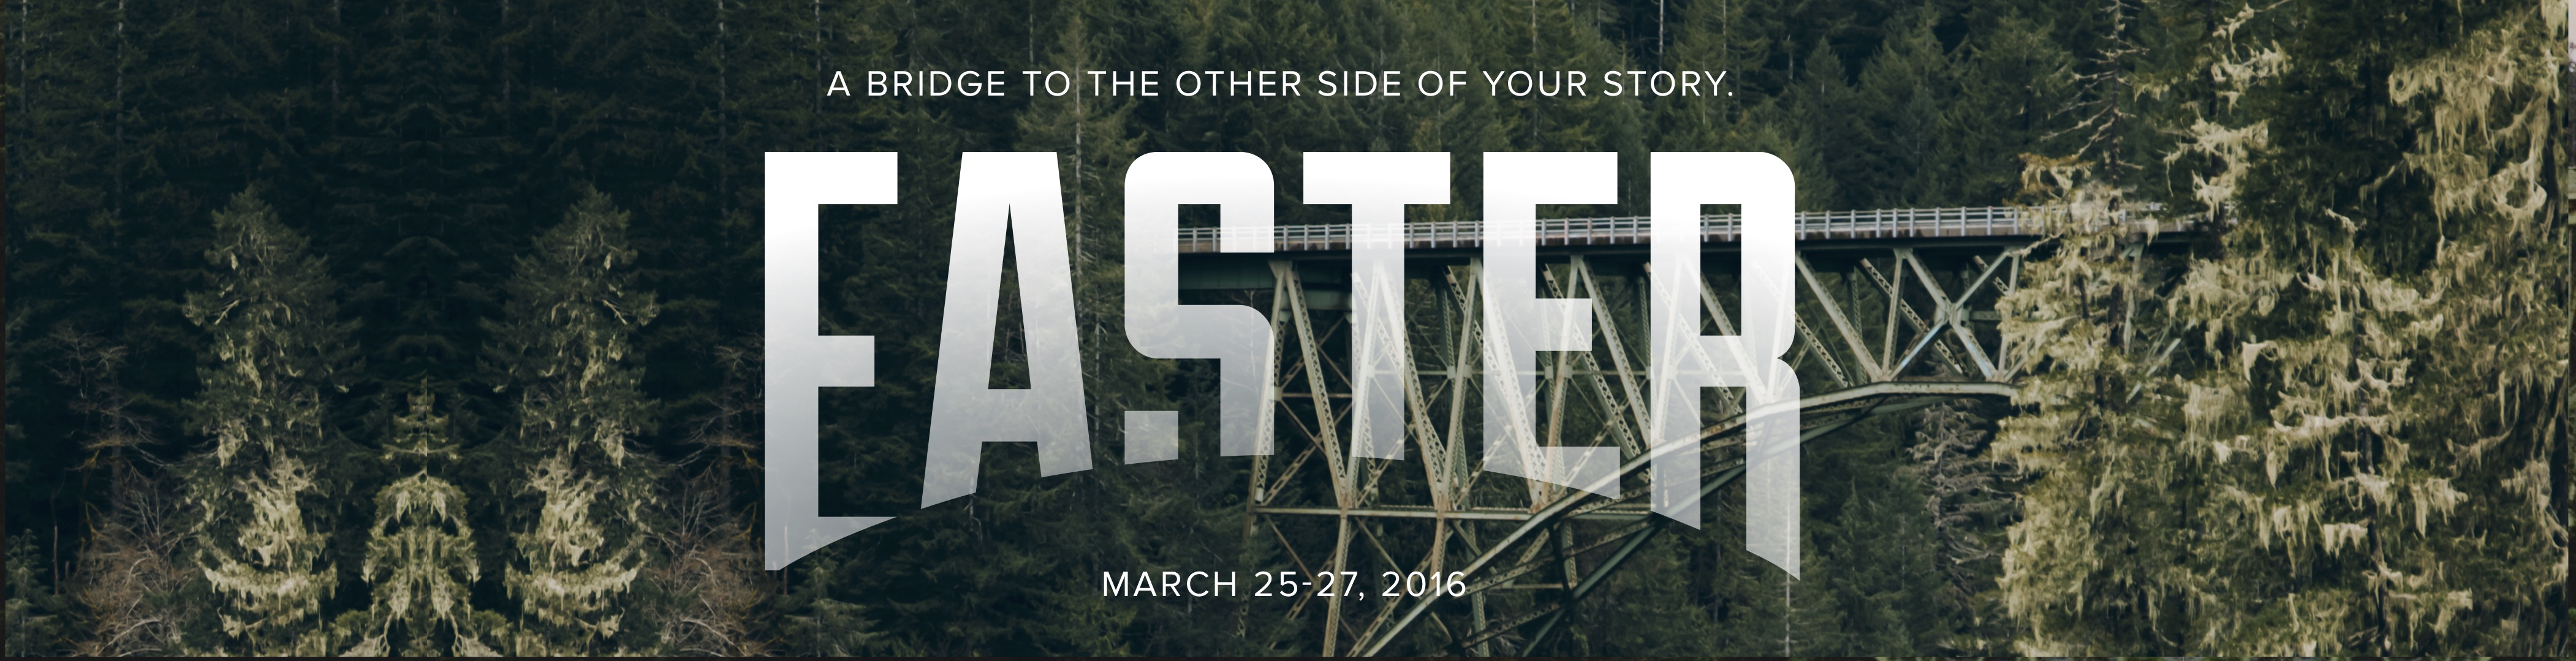 Easter 1 - with date - Web (AI)